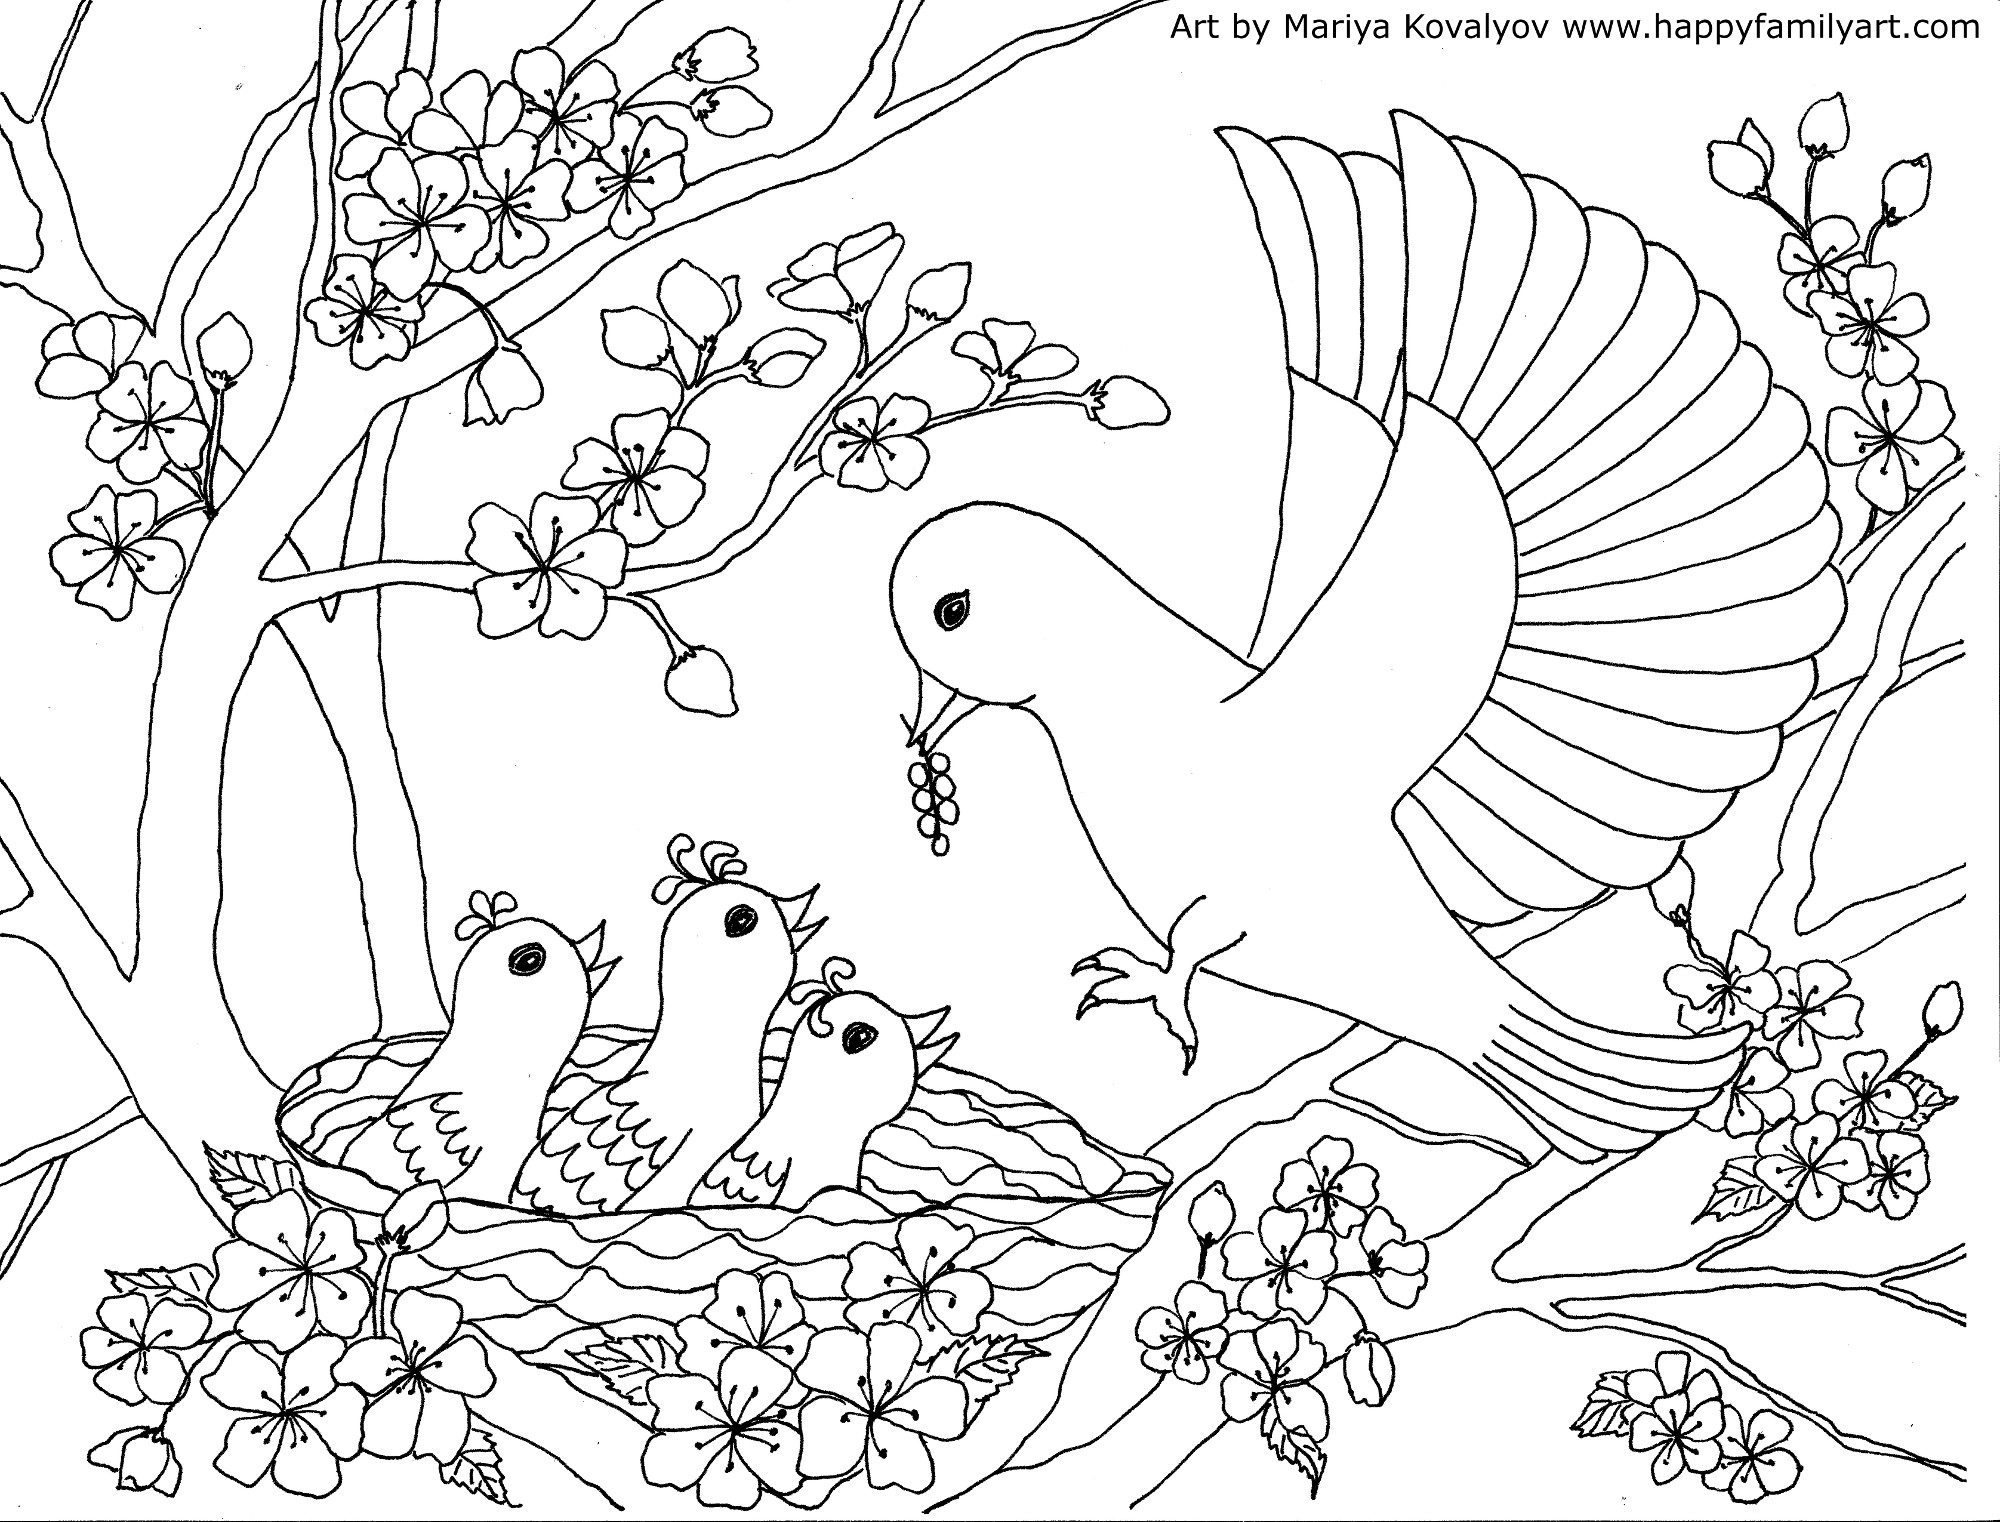 printable images of birds birds coloring page happy family art birds images printable of